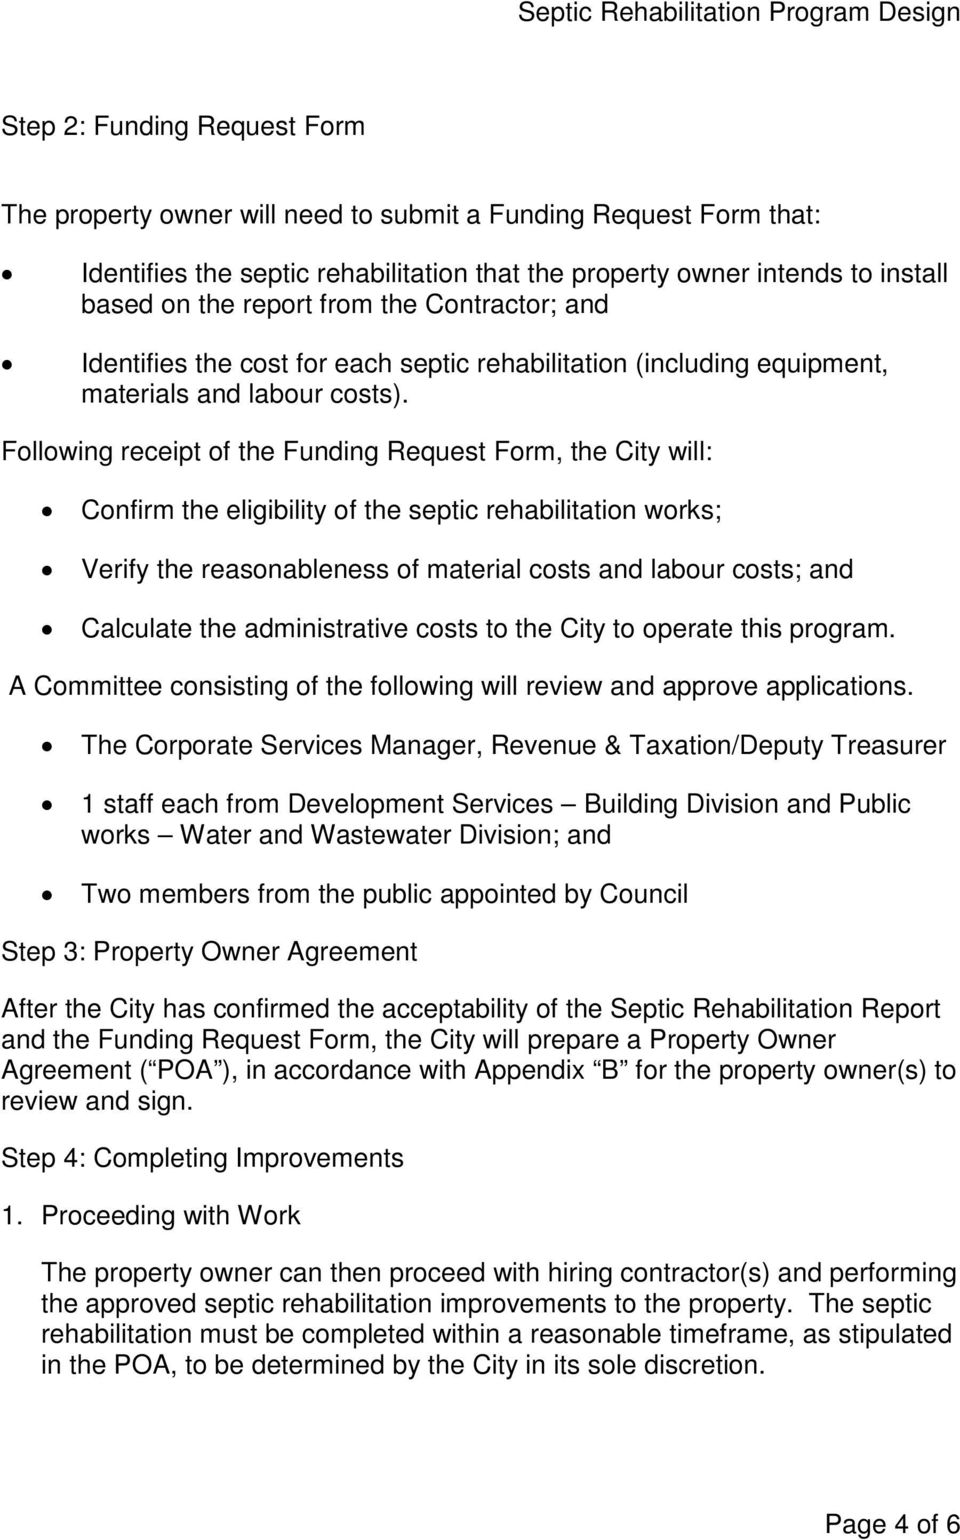 Following receipt of the Funding Request Form, the City will: Confirm the eligibility of the septic rehabilitation works; Verify the reasonableness of material costs and labour costs; and Calculate